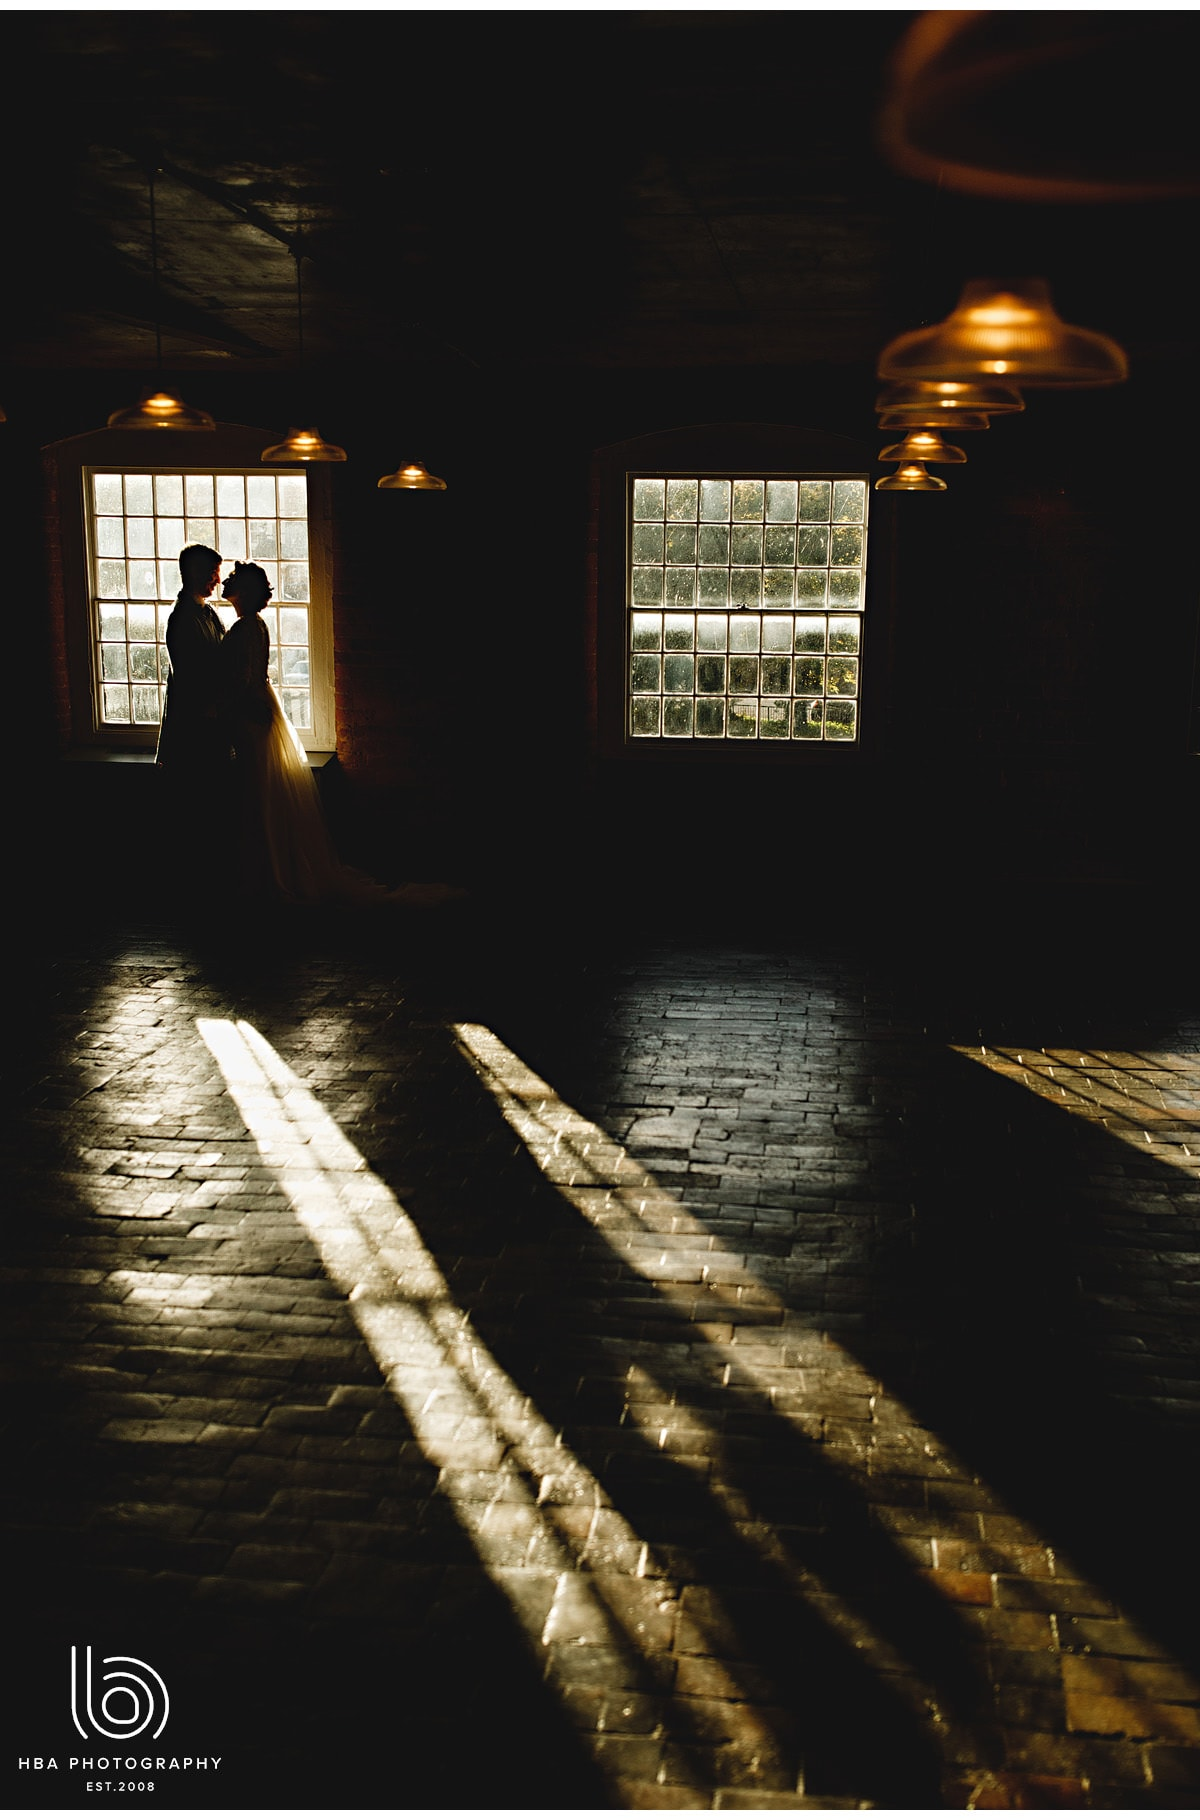 the bride & groom with the sun shing through the window